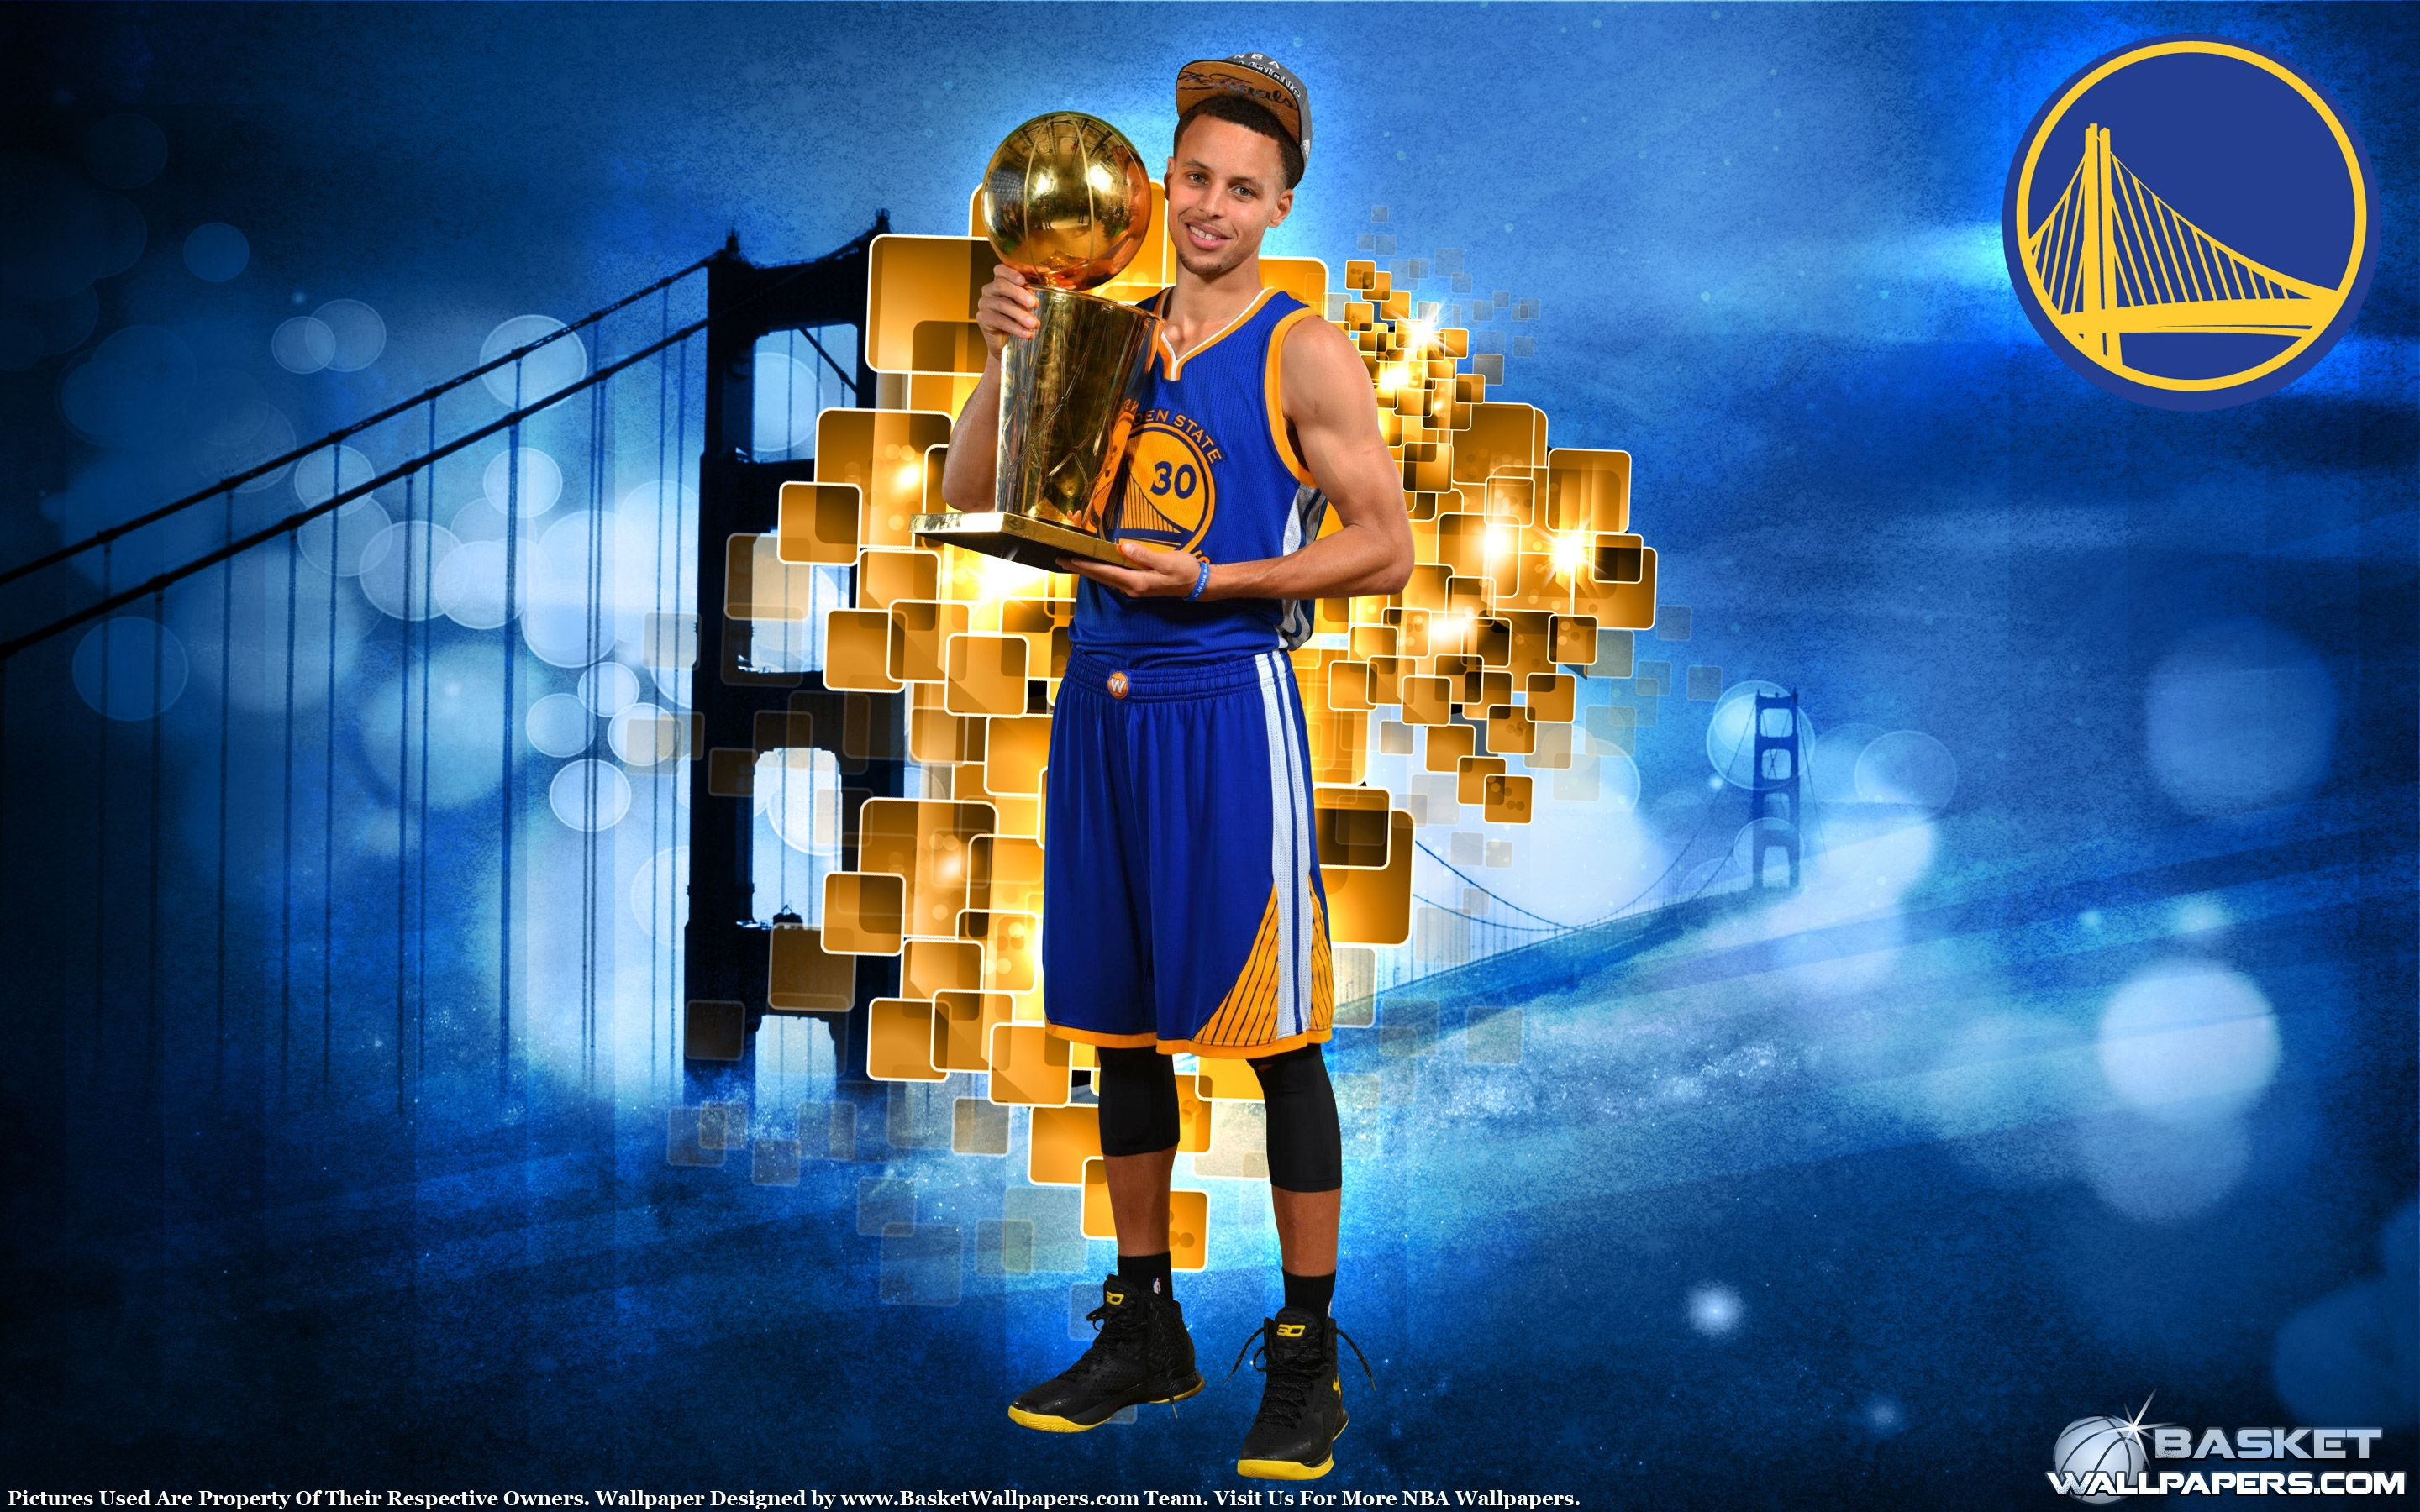 Stephen Curry Wallpaper For Ps3 Best Wallpaper Hd Stephen Curry Wallpaper Curry Wallpaper Nba Wallpapers